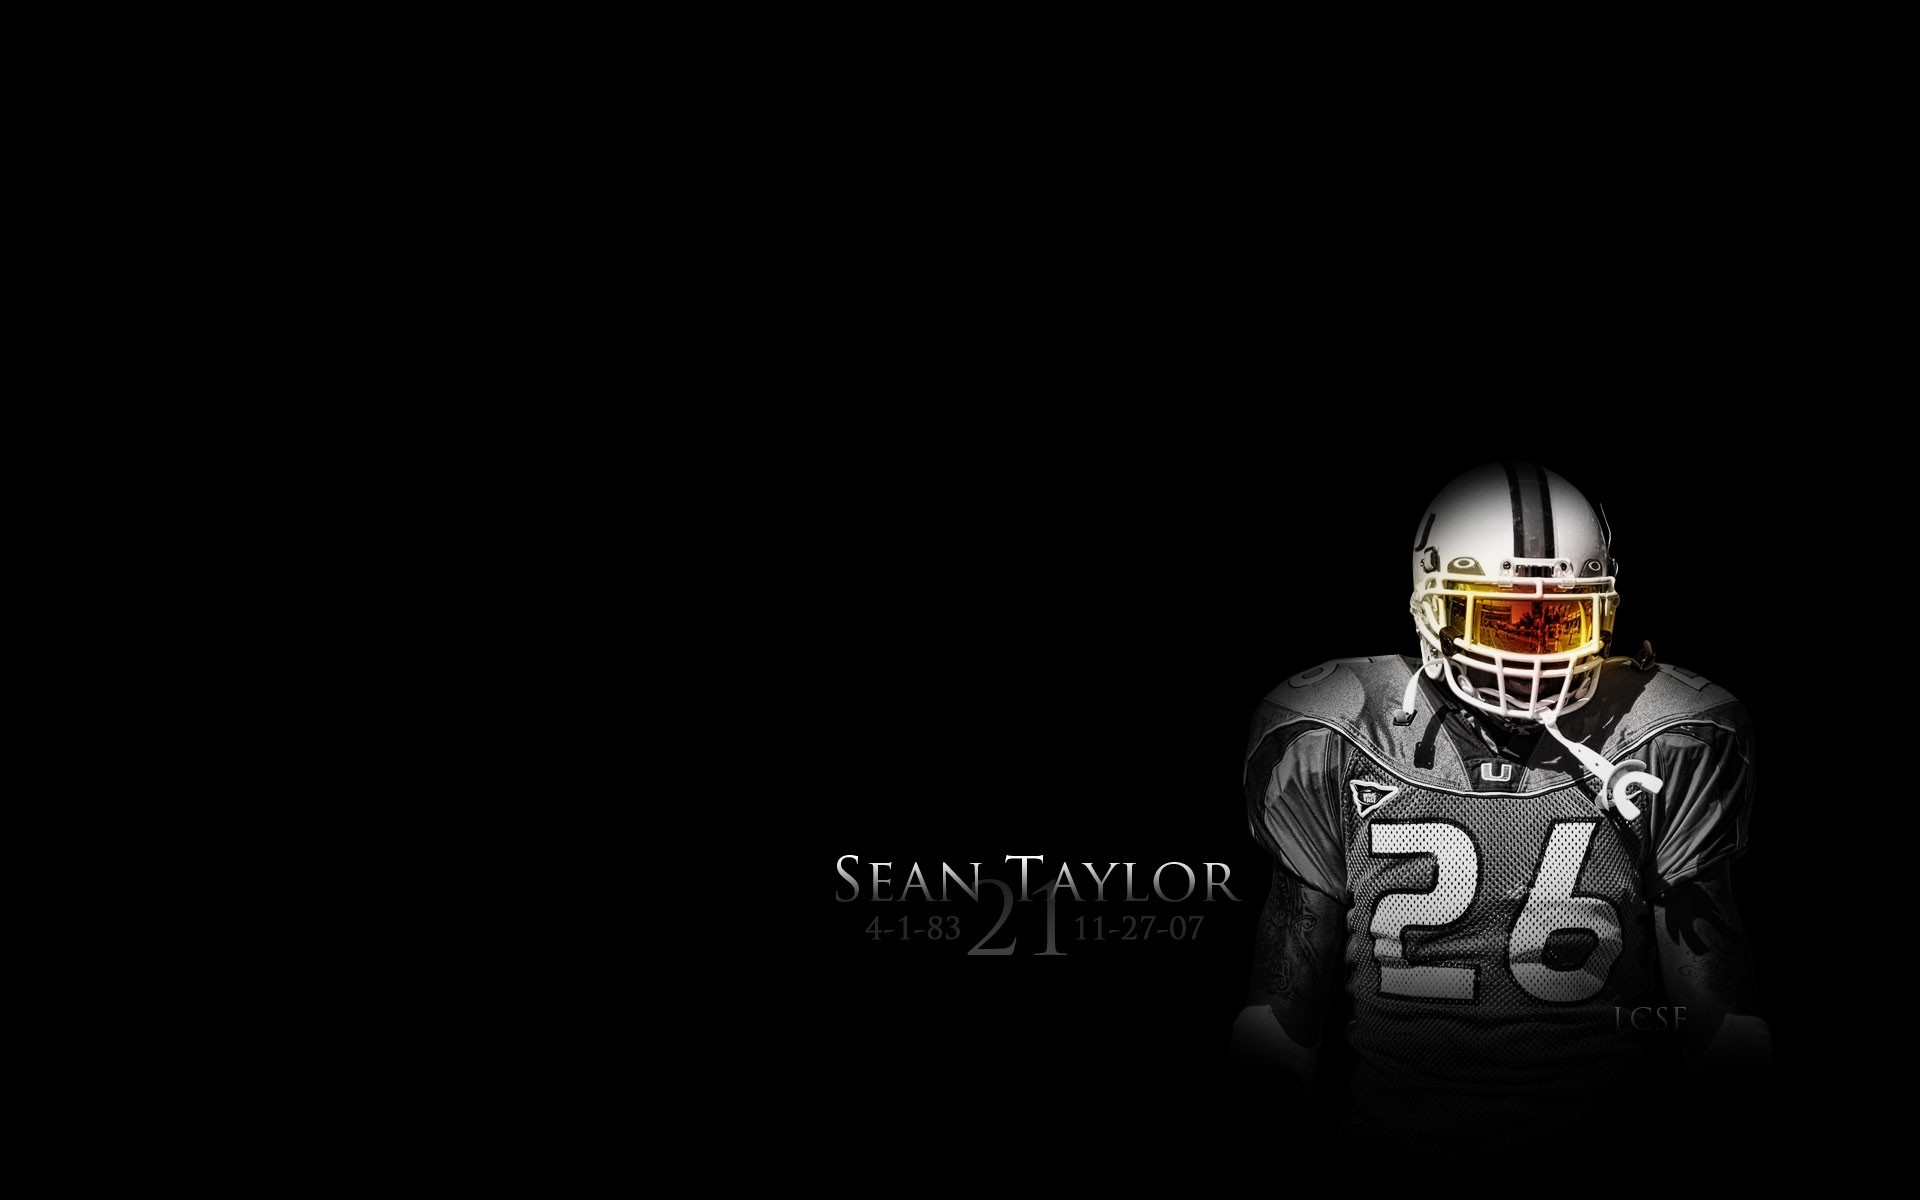 1920x1200 Sean Taylor Miami Hurricanes, redskins, washington,  HD .